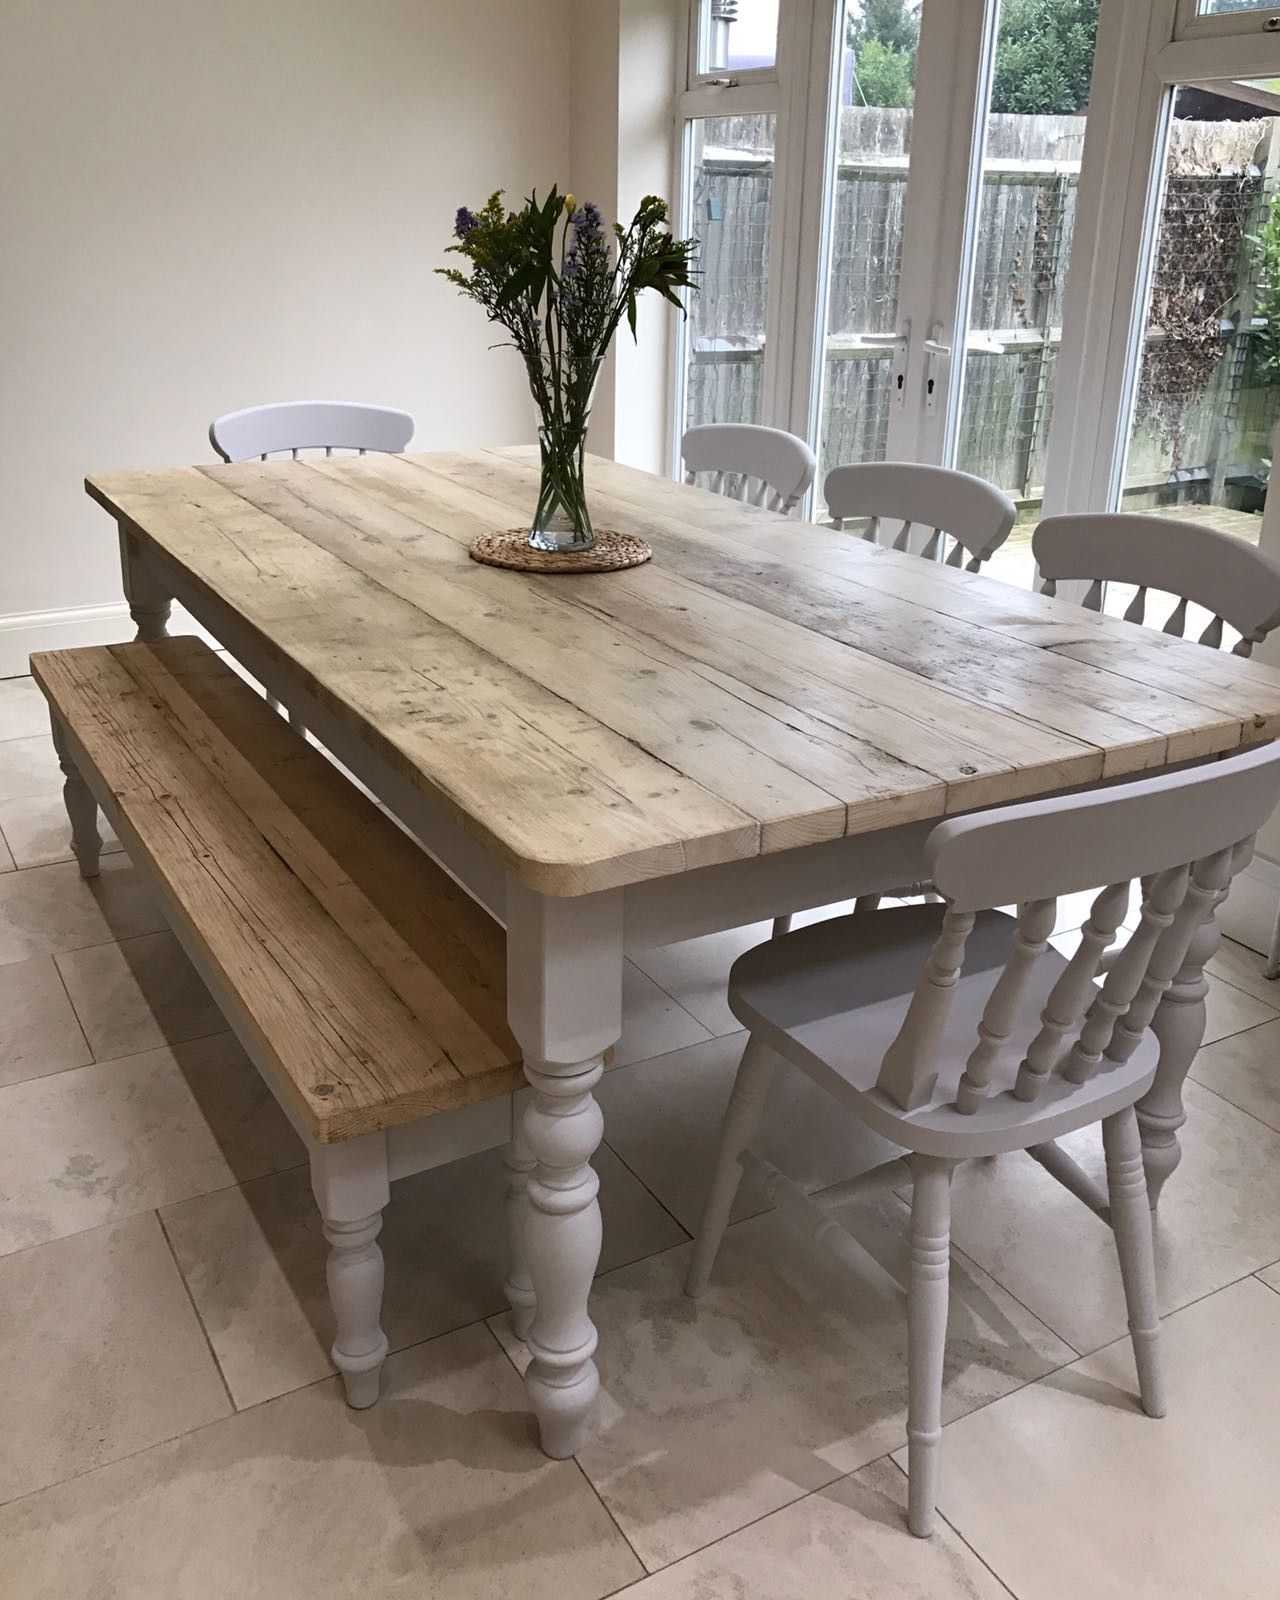 Lime washed farmhouse tables and benches bespoke sizes